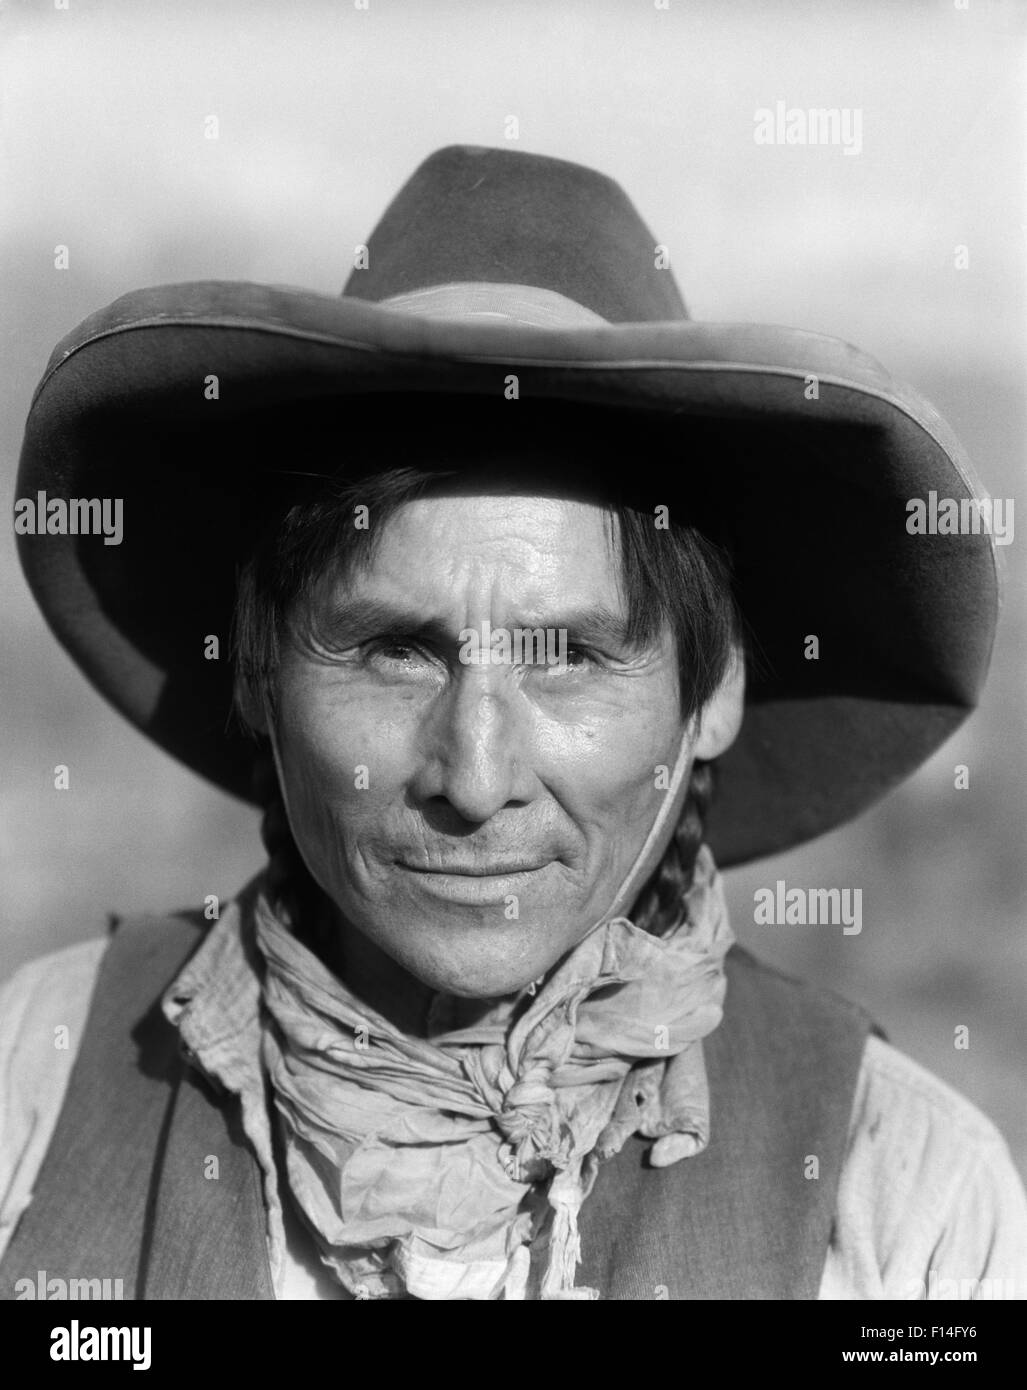 1920s SMILING NATIVE AMERICAN STONEY SIOUX INDIAN MAN WESTERN TRAIL GUIDE  WEARING COWBOY HAT LOOKING AT CAMERA ALBERTA CANADA 4c8892baab9